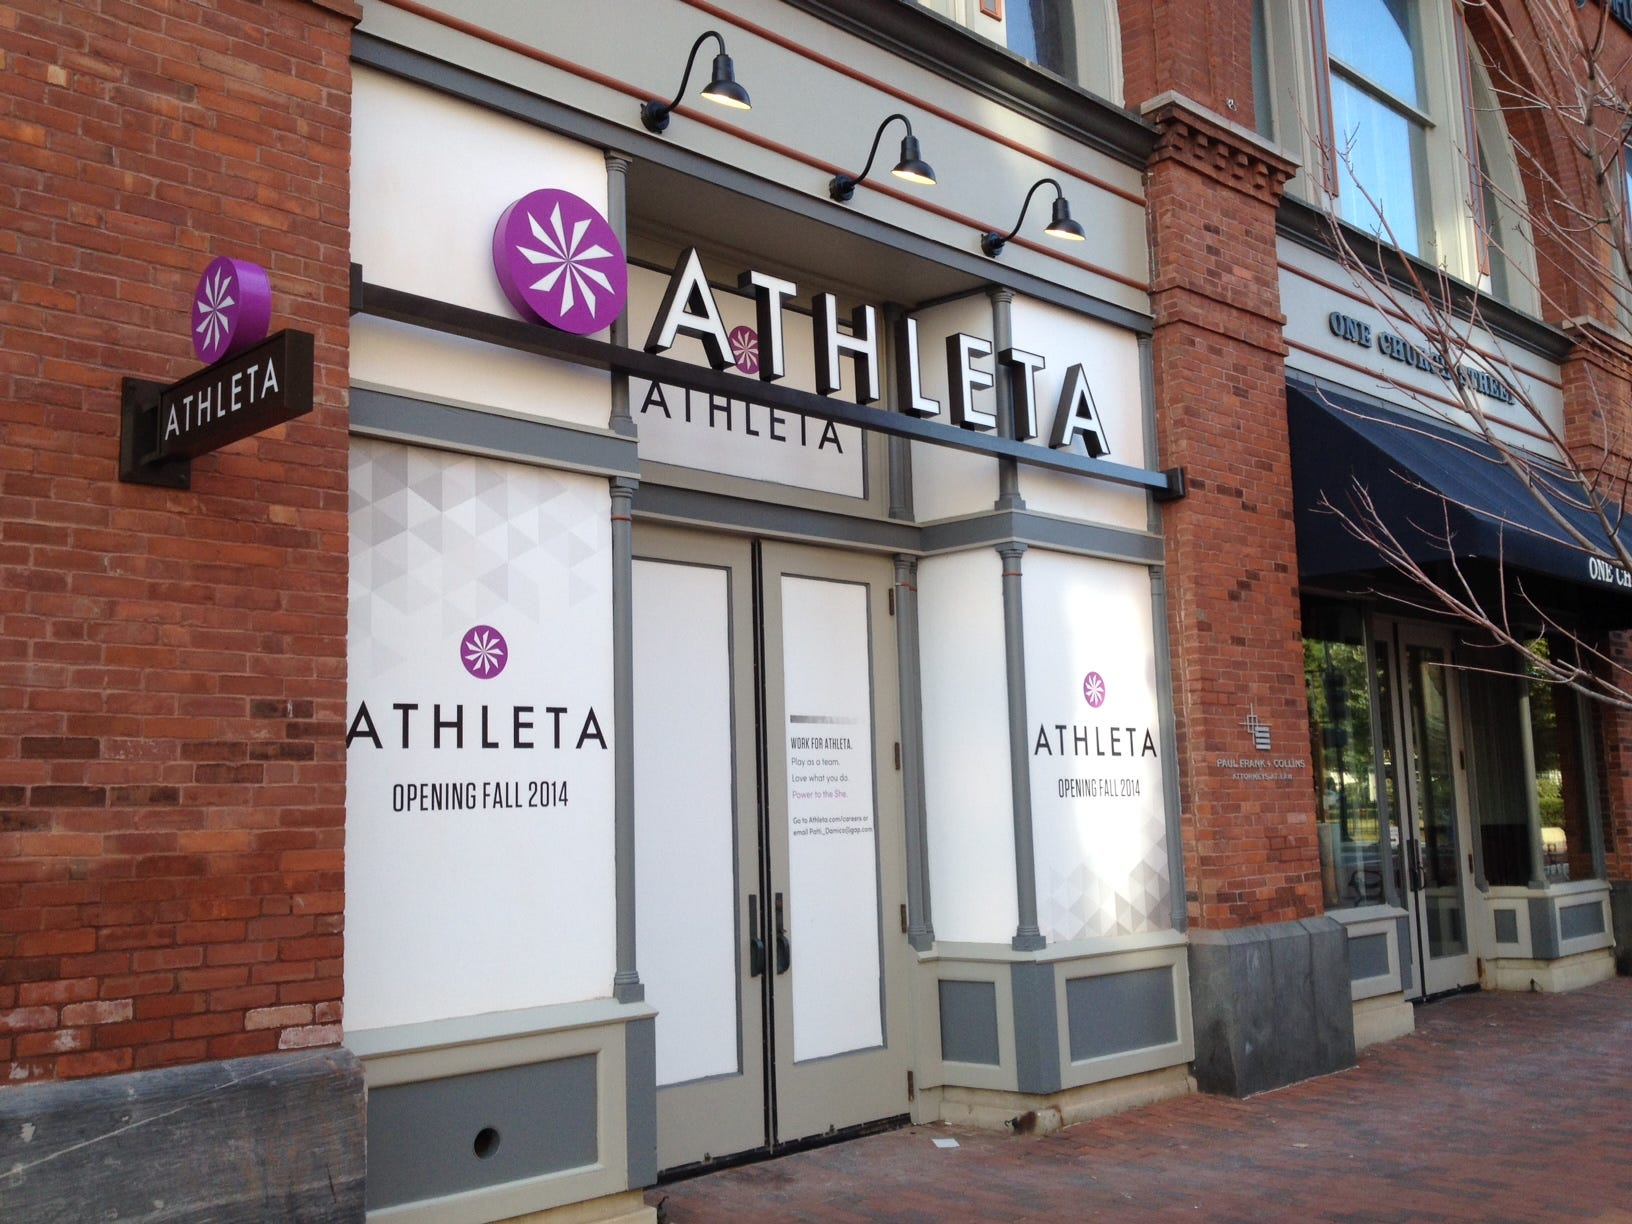 Athleta usa